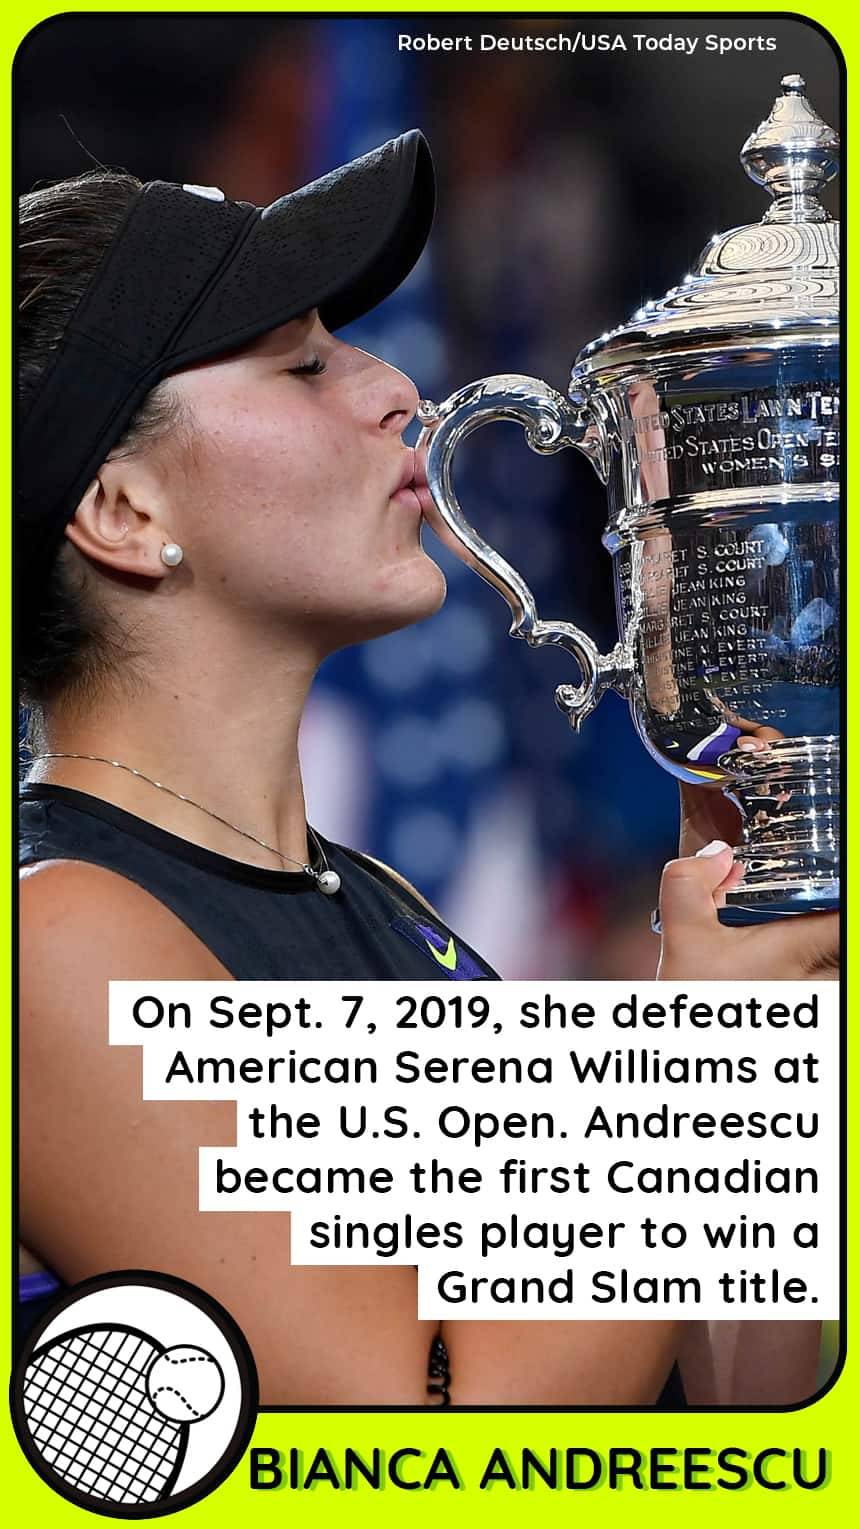 TEXT: On Sept. 7, 2019, she defeated American Serena Williams at the U.S. Open. Andreescu became the first Canadian singles player to win a Grand Slam title.  IMAGE: A woman kisses a trophy.